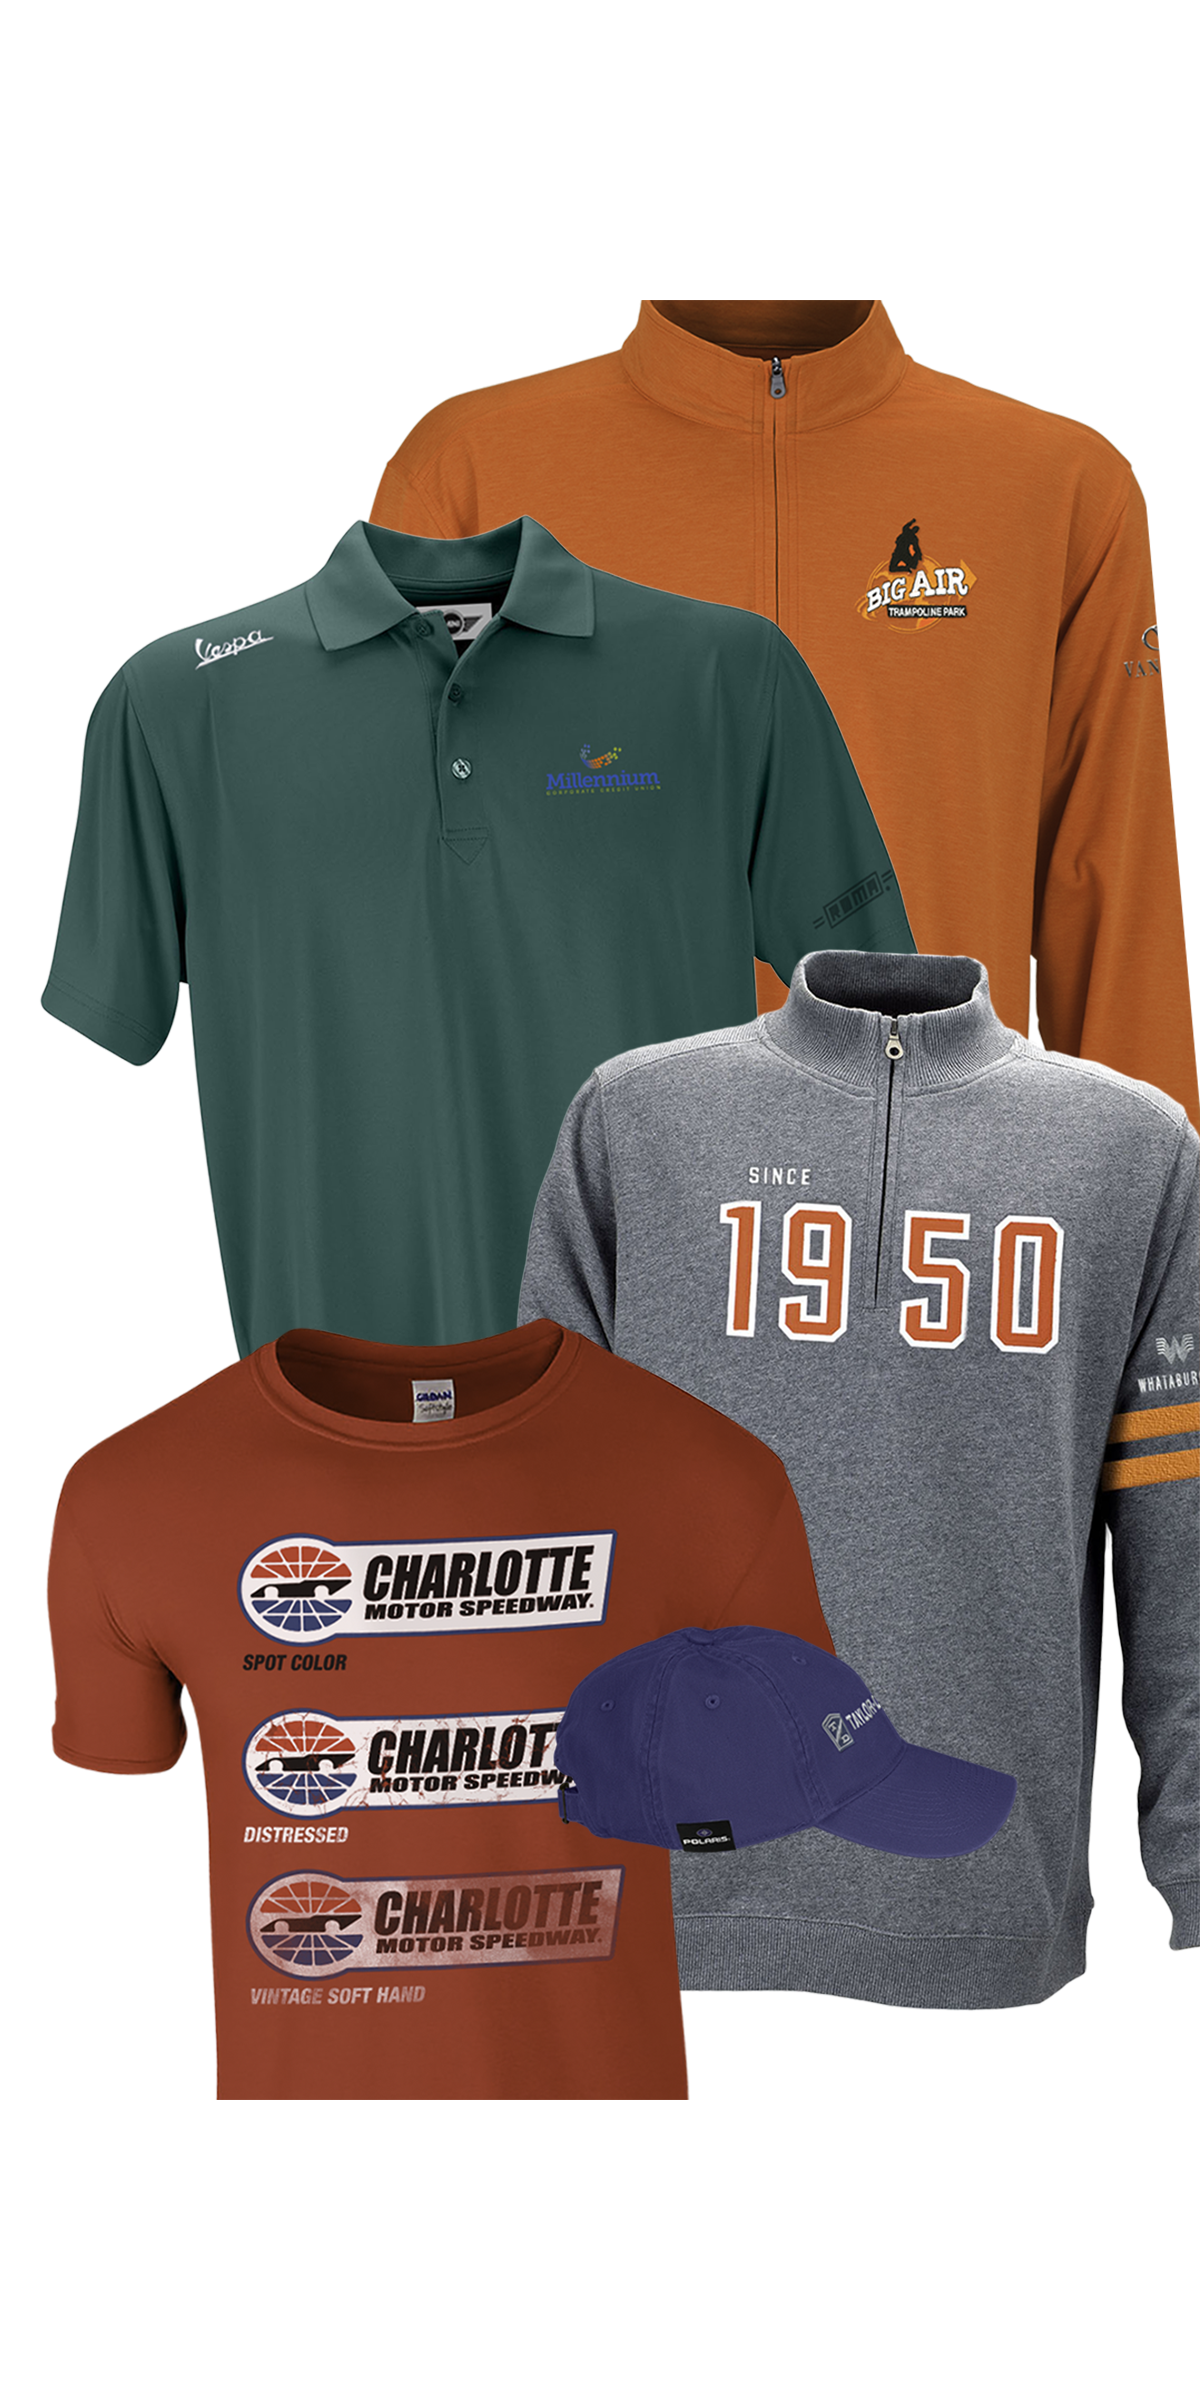 90a2869b Vantage Apparel - Nation's Top Supplier for Custom Logo Apparel